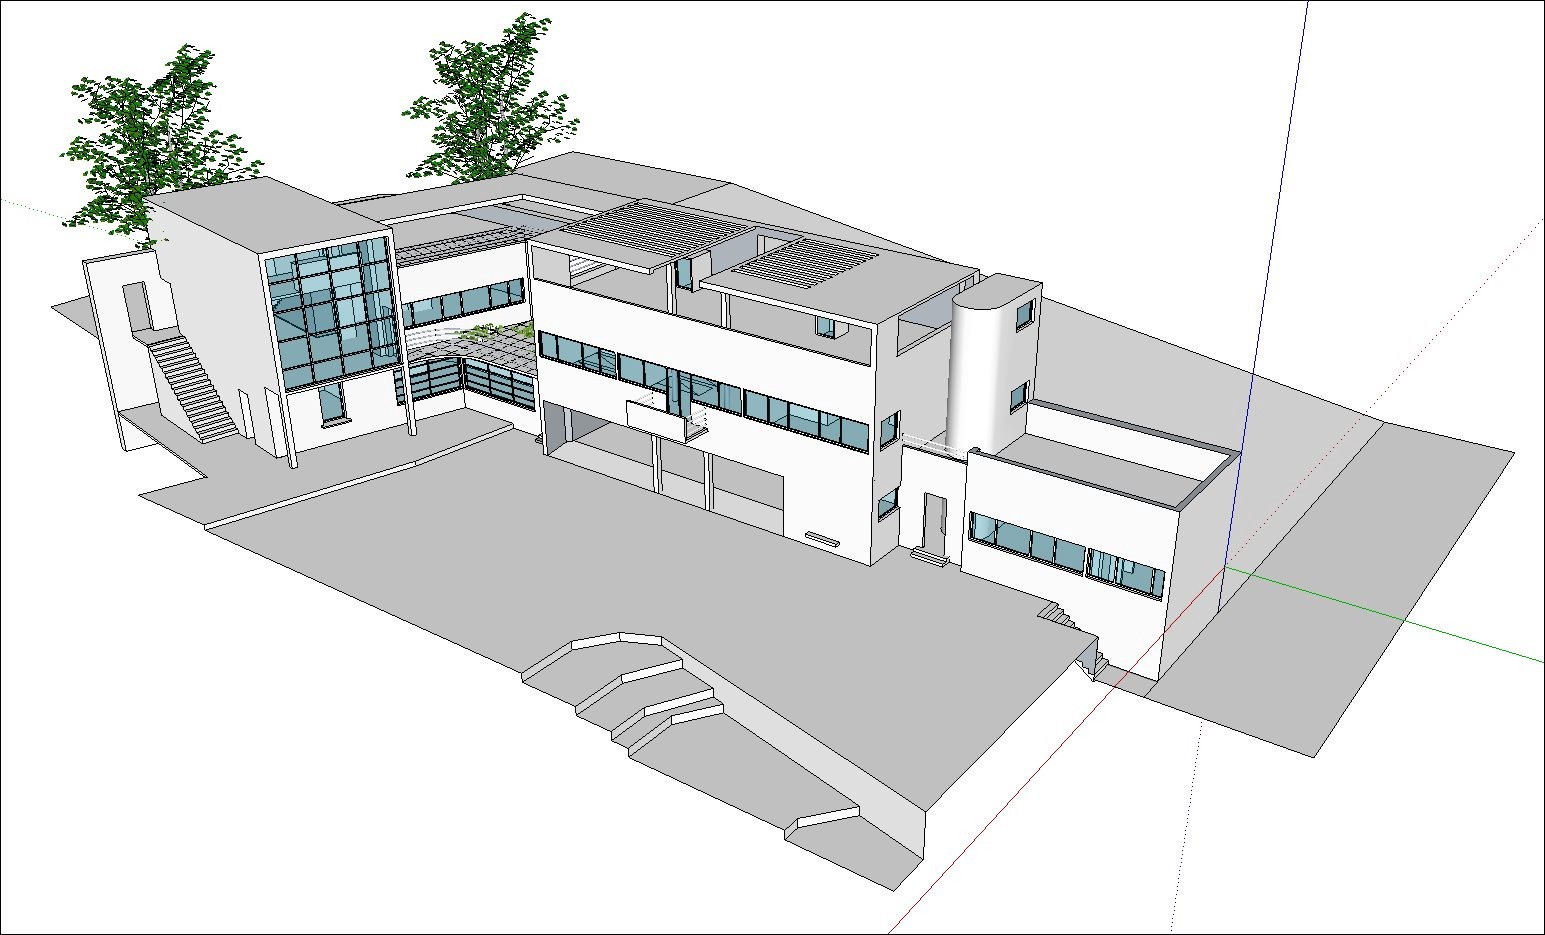 24 Types Of Le Corbusier Architecture Sketchup 3d Models Recommanded By Cad Design Free Cad Blocks And Drawings Medium